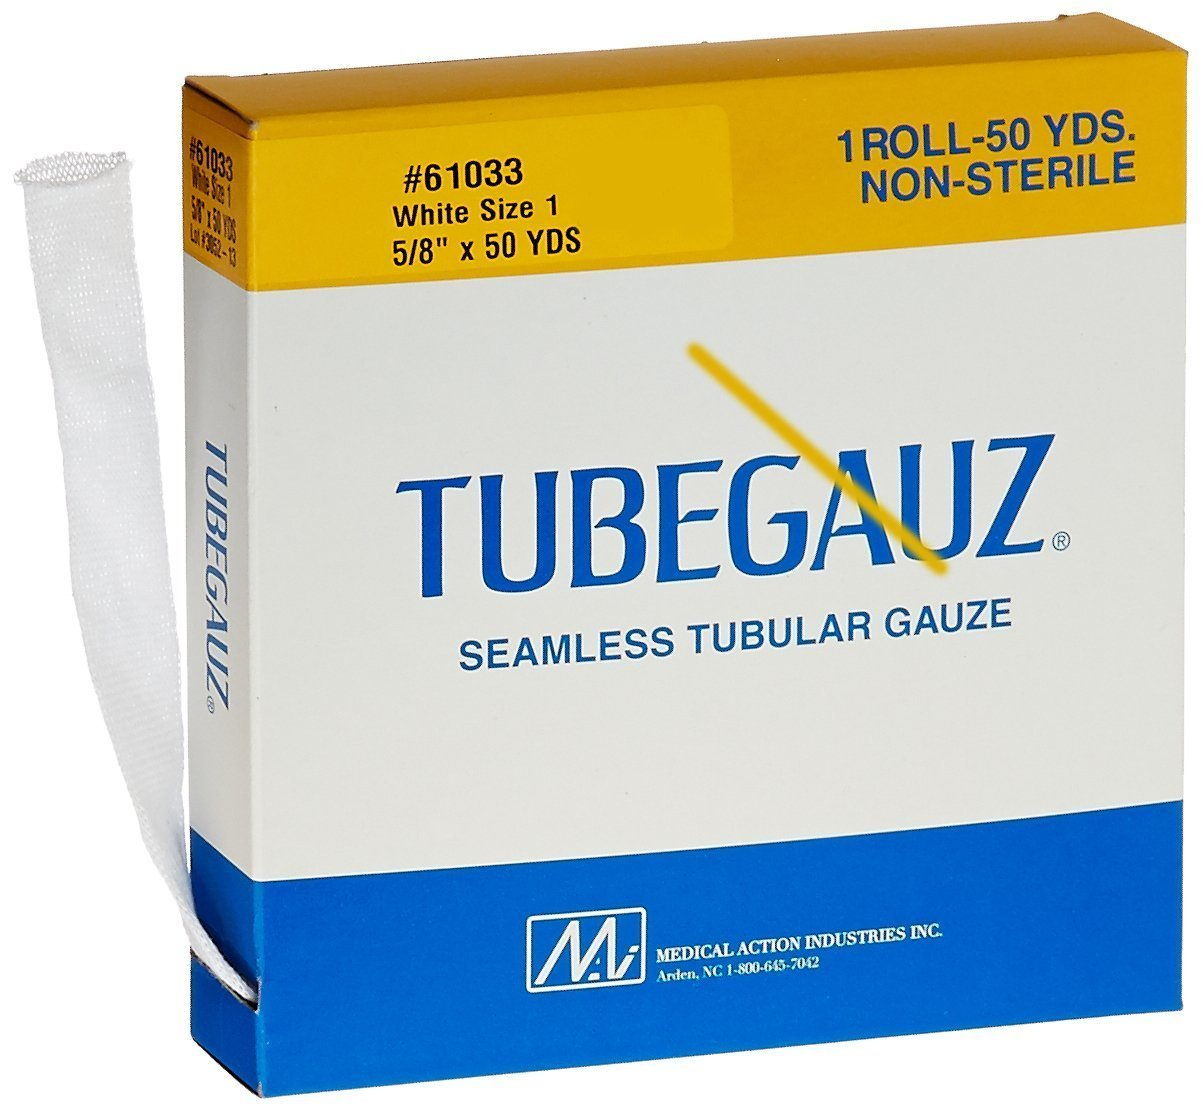 100% Cotton TubeGauz Tubular Gauze by Medical Action